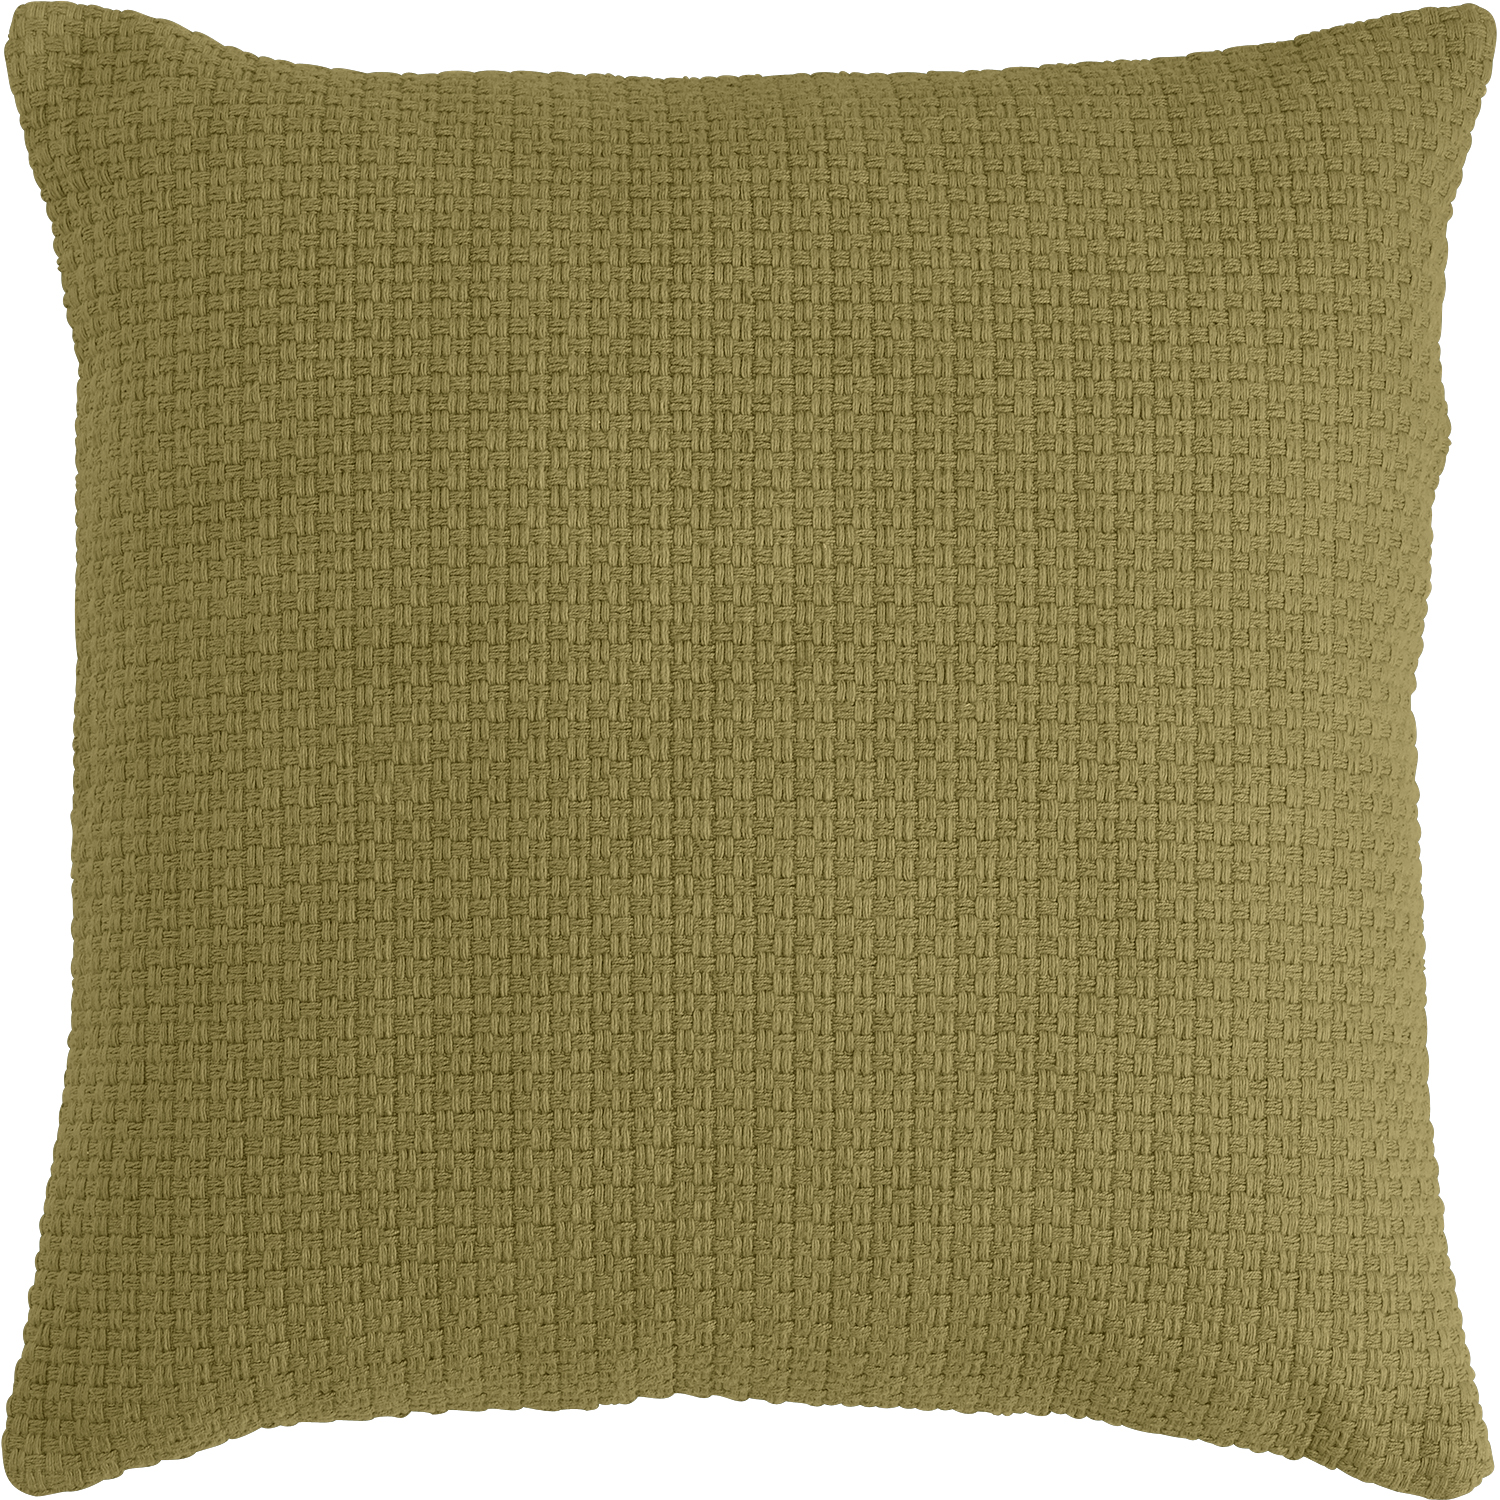 Raleigh Pillow - Olive